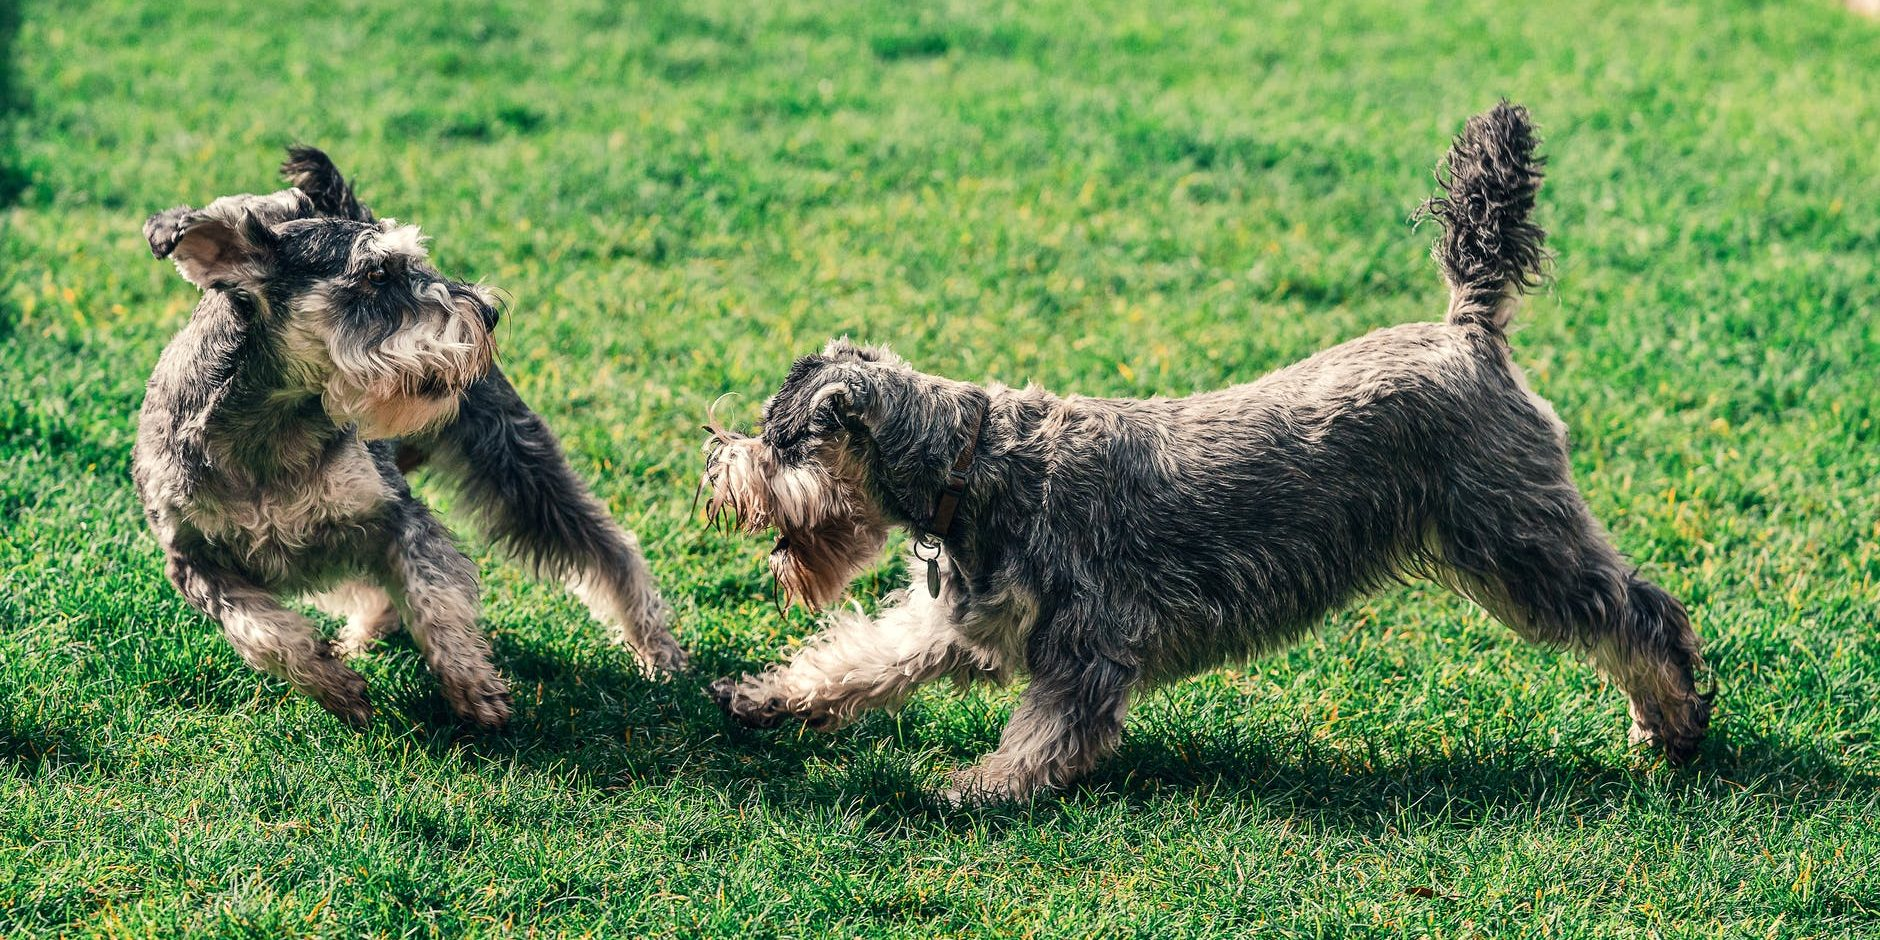 photo of two schnauzer playing on grass